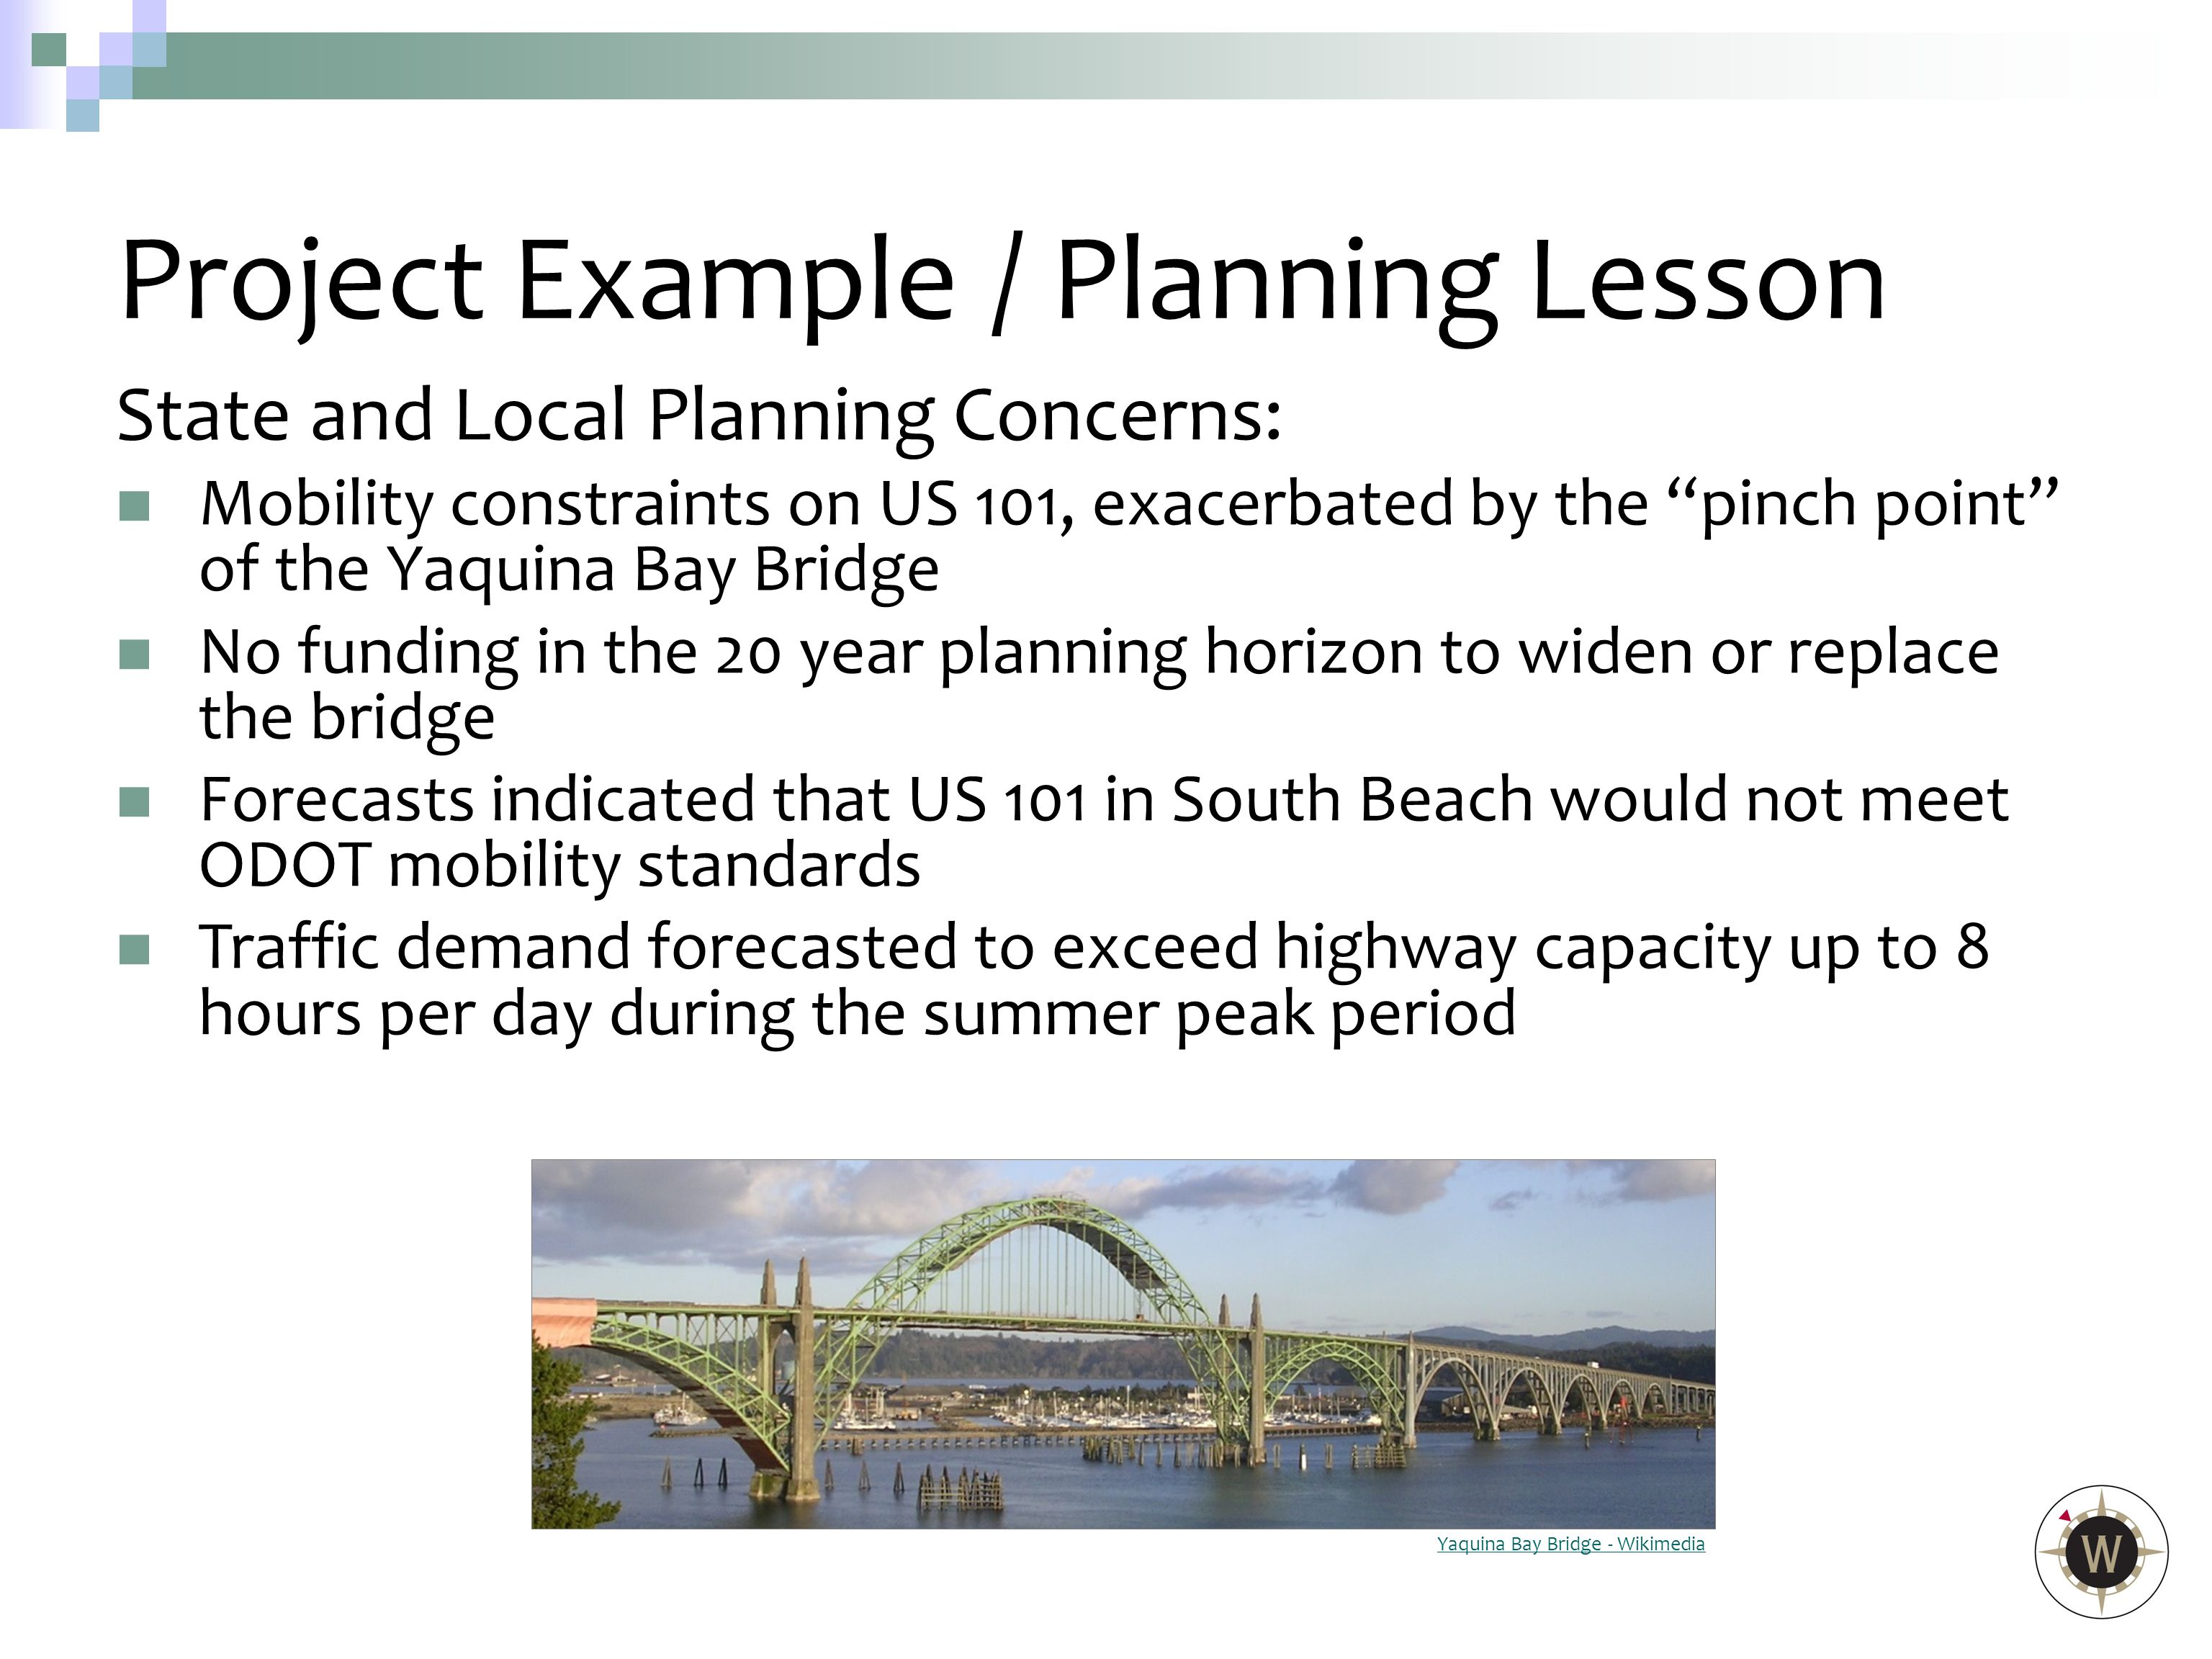 State and Local Planning Concerns: Mobility constraints on US 101, exacerbated by the pinch point of the Yaquina Bay Bridge No funding in the 20 year planning horizon to widen or replace the bridge Forecasts indicated that US 101 in South Beach would not meet ODOT mobility standards Traffic demand forecasted to exceed highway capacity up to 8 hours per day during the summer peak period Project Example/ Planning Lesson Yaquina Bay Bridge - Wikimedia